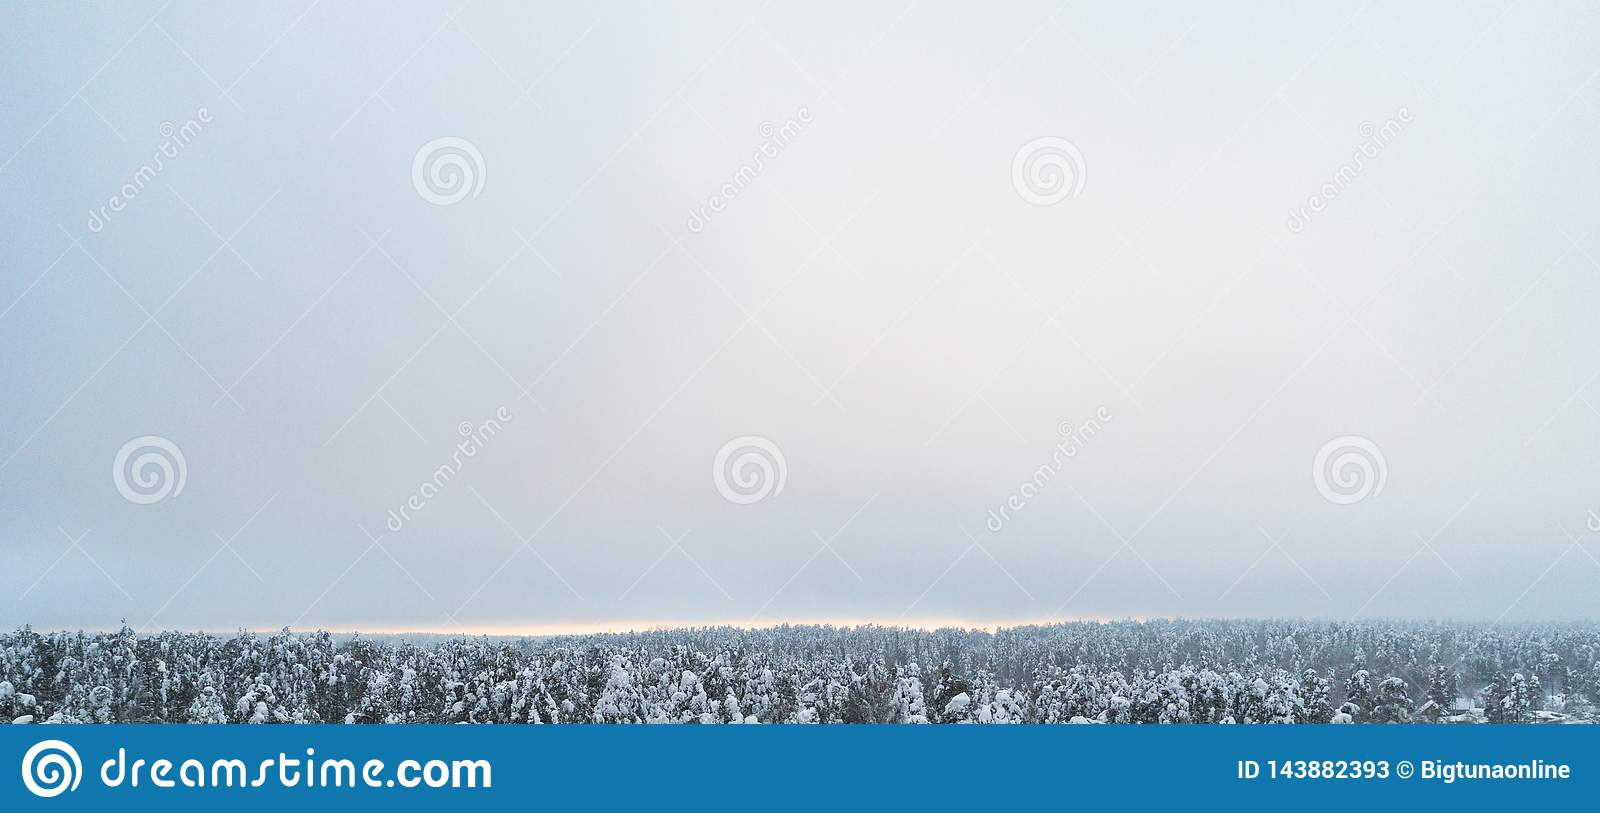 Aerial view of a winter snow-covered pine forest. Winter forest texture. Aerial view. Aerial drone view of a winter landscape. Sno